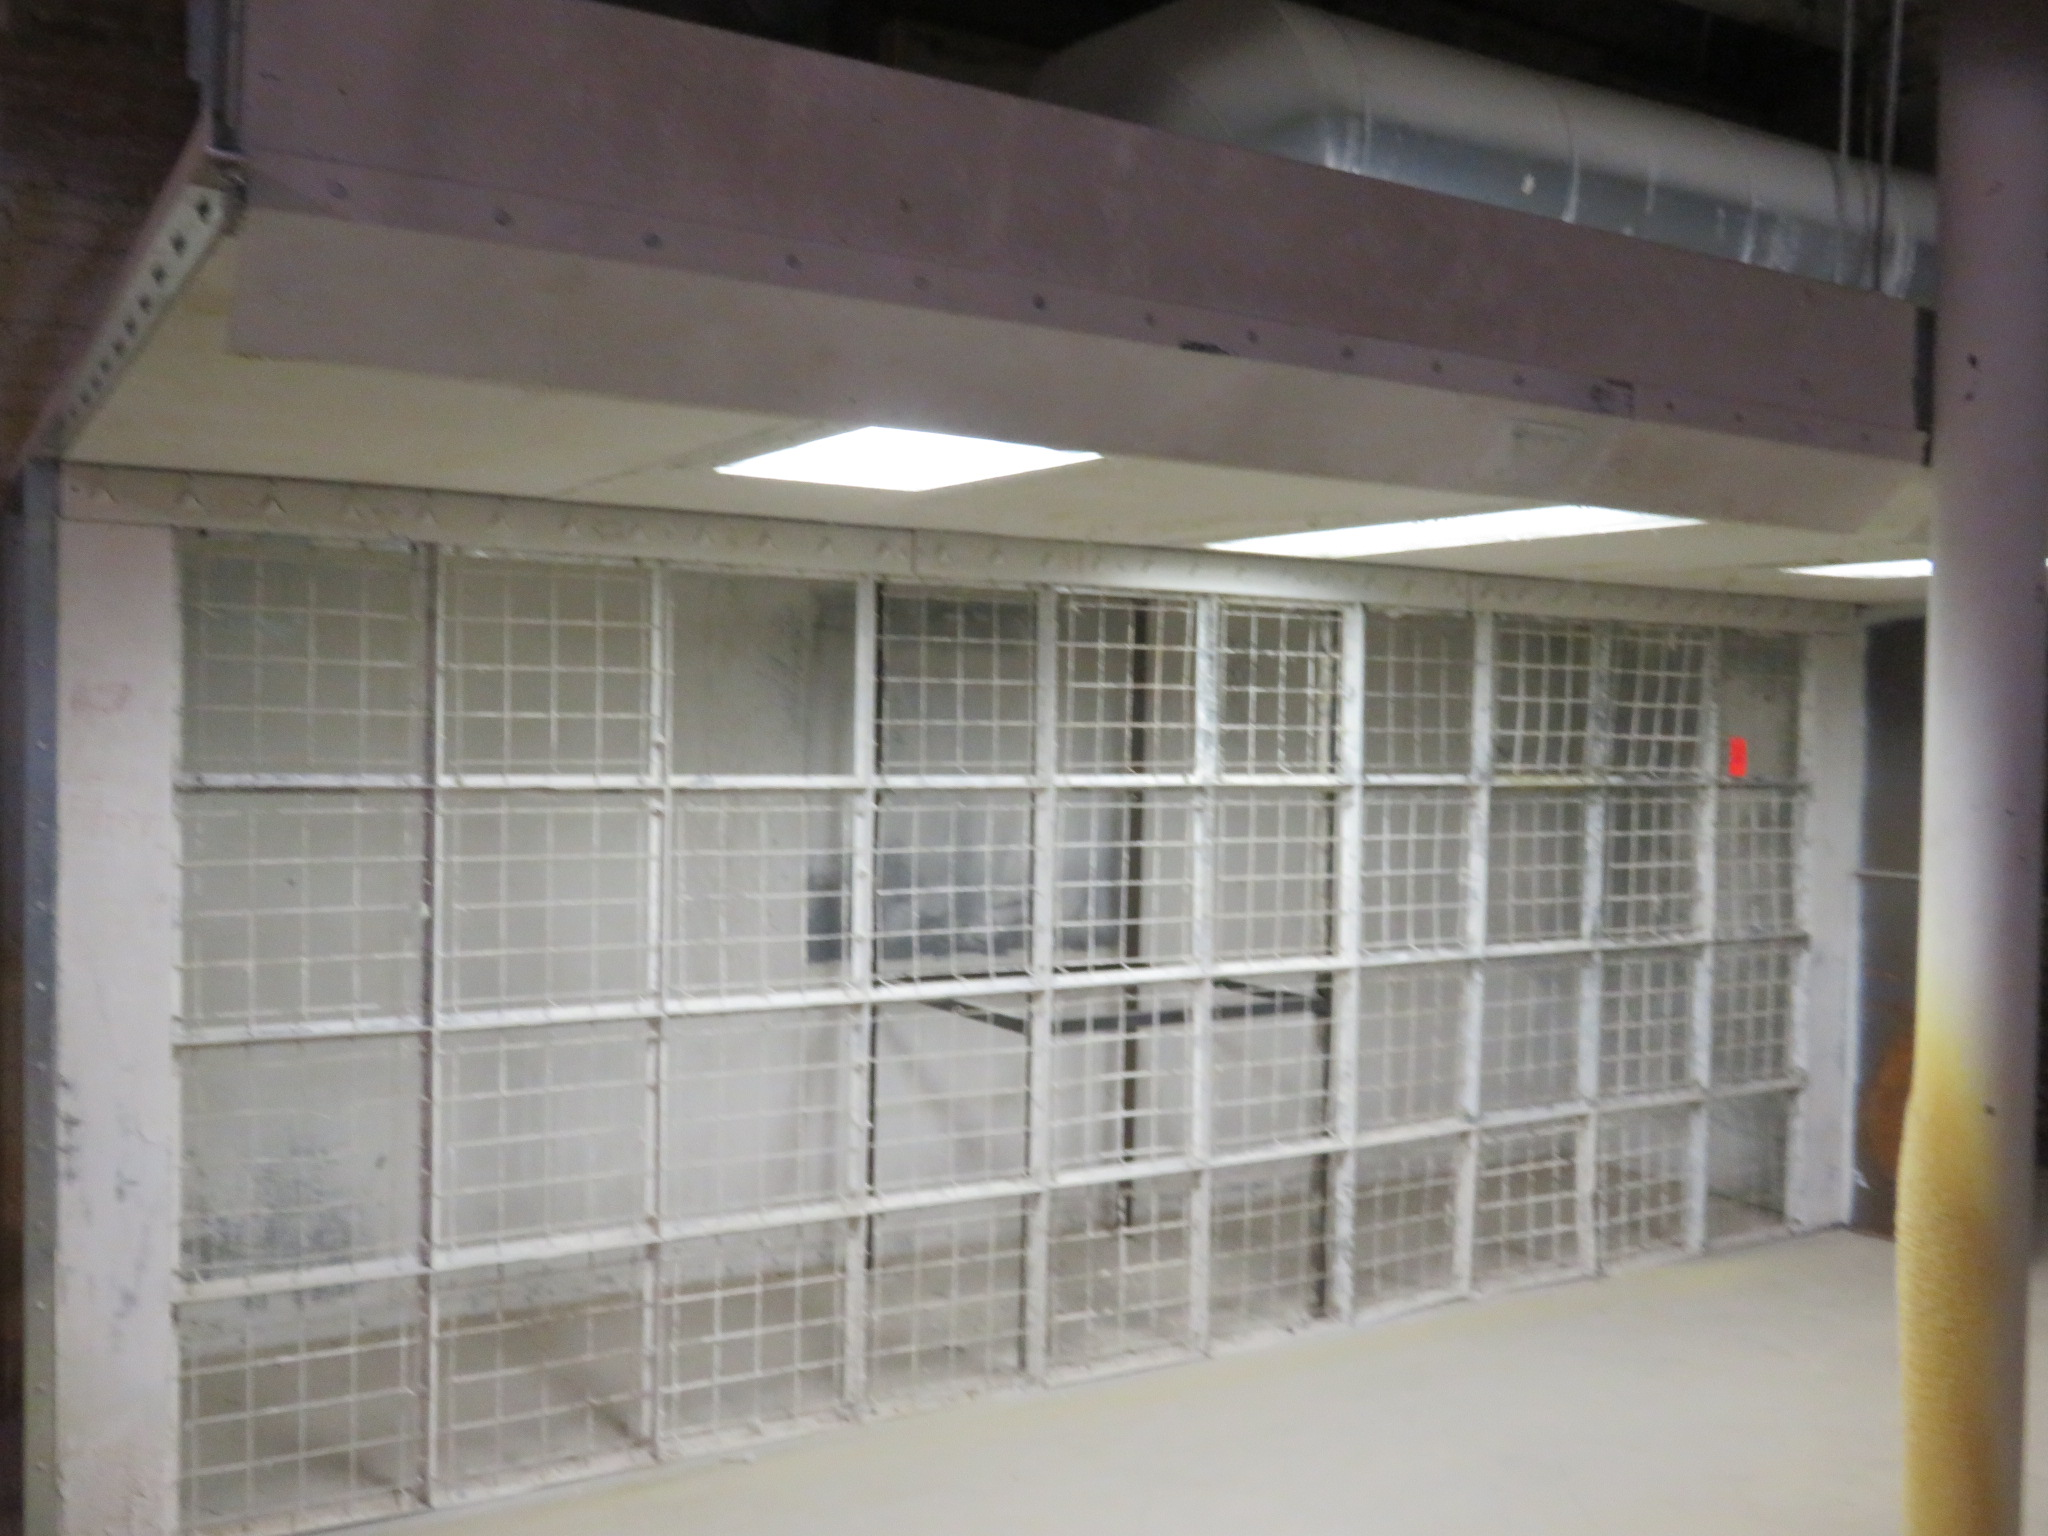 Paint Booth PP187 approx 18' x 11' x 7'